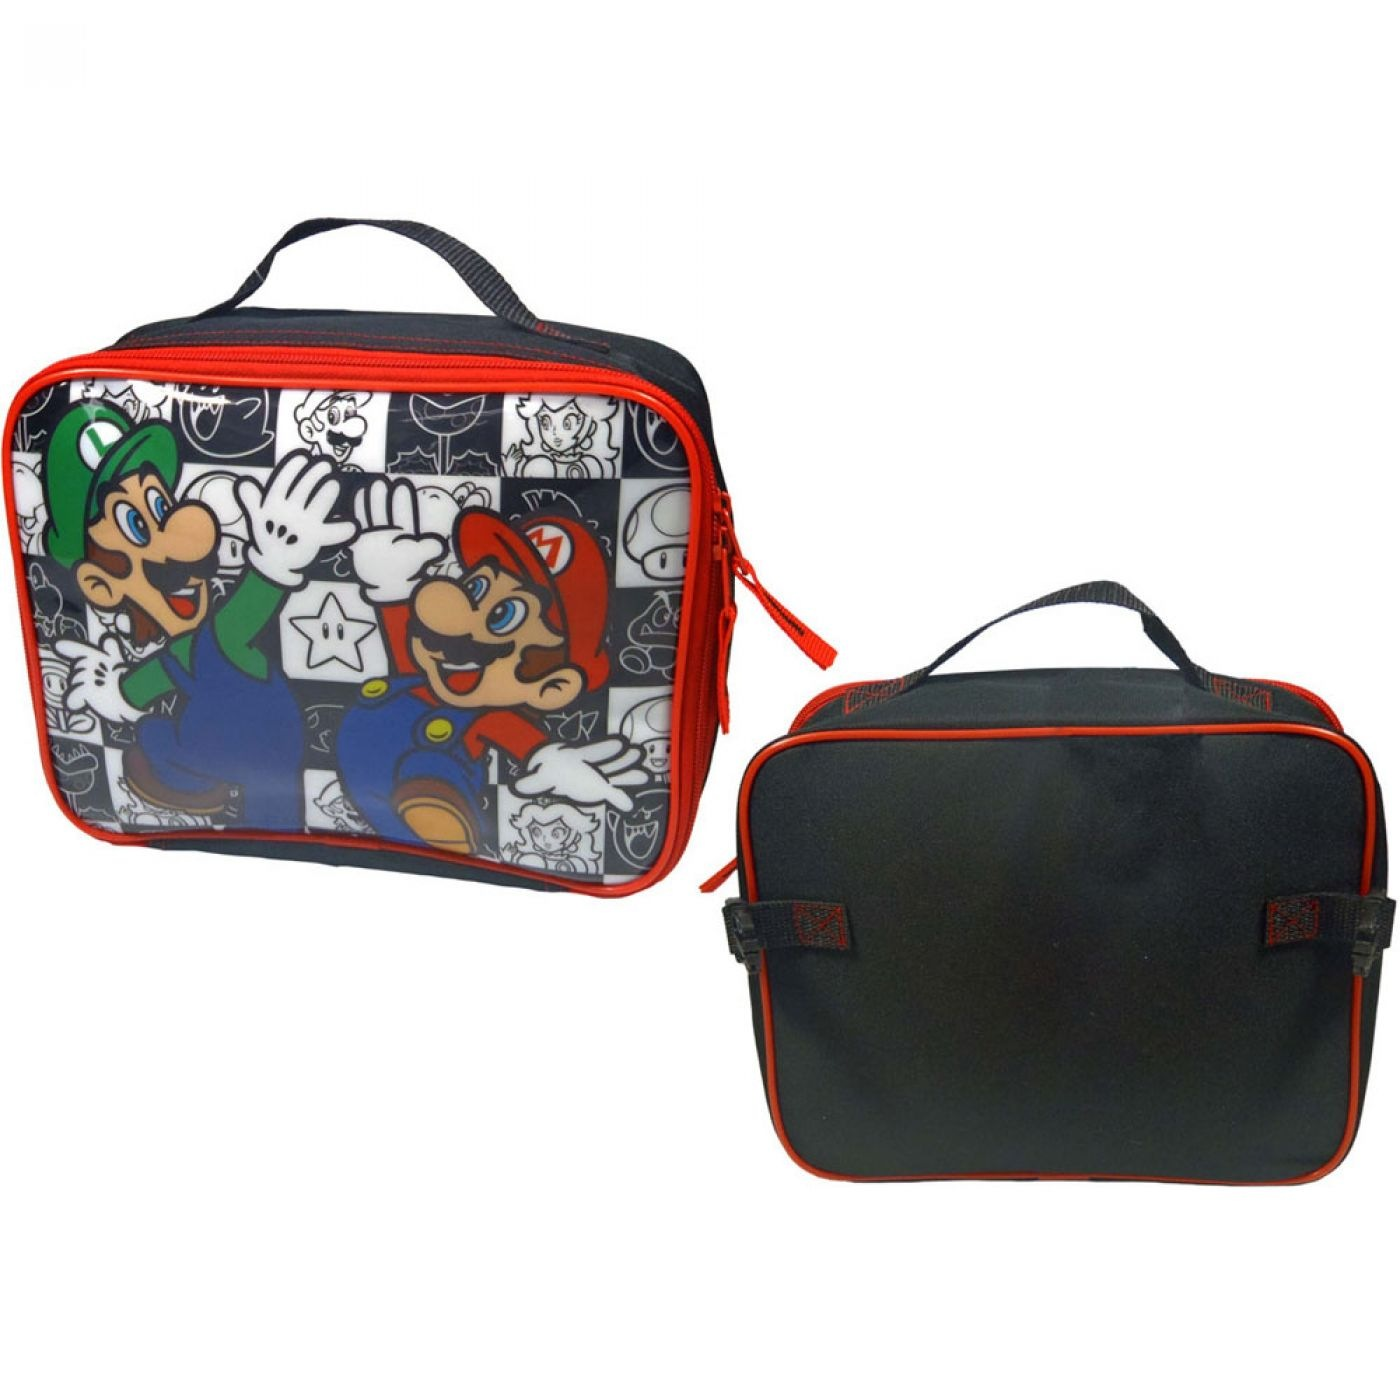 Nintendo Super Mario Bros lunch bag - Mario/Luigi bag